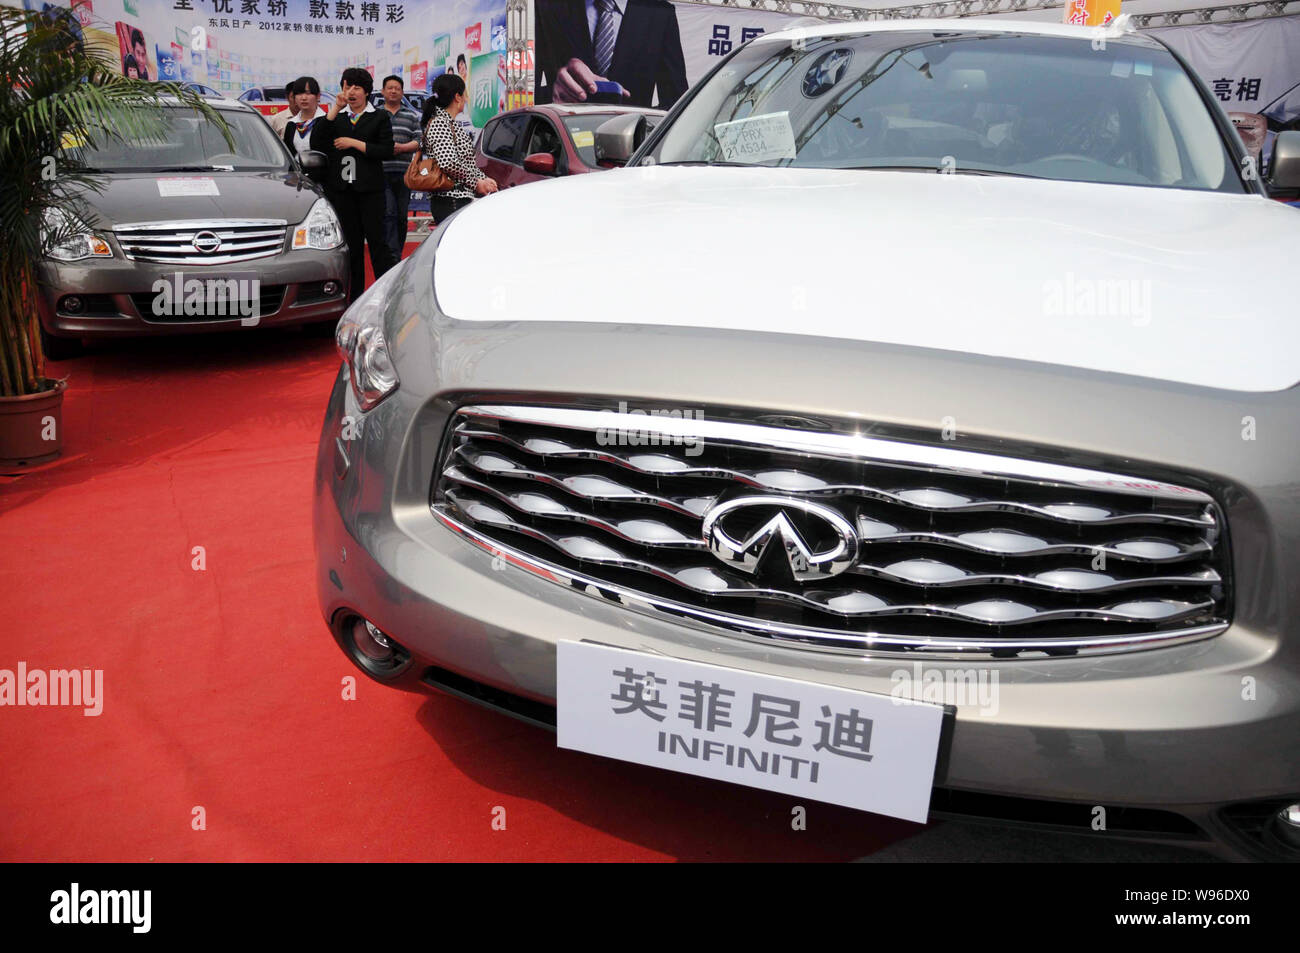 Visitors look at Nissan and Infiniti cars during an auto show in Binzhou city, east Chinas Shandong province, 22 April 2012.   Luxury automaker Infini Stock Photo